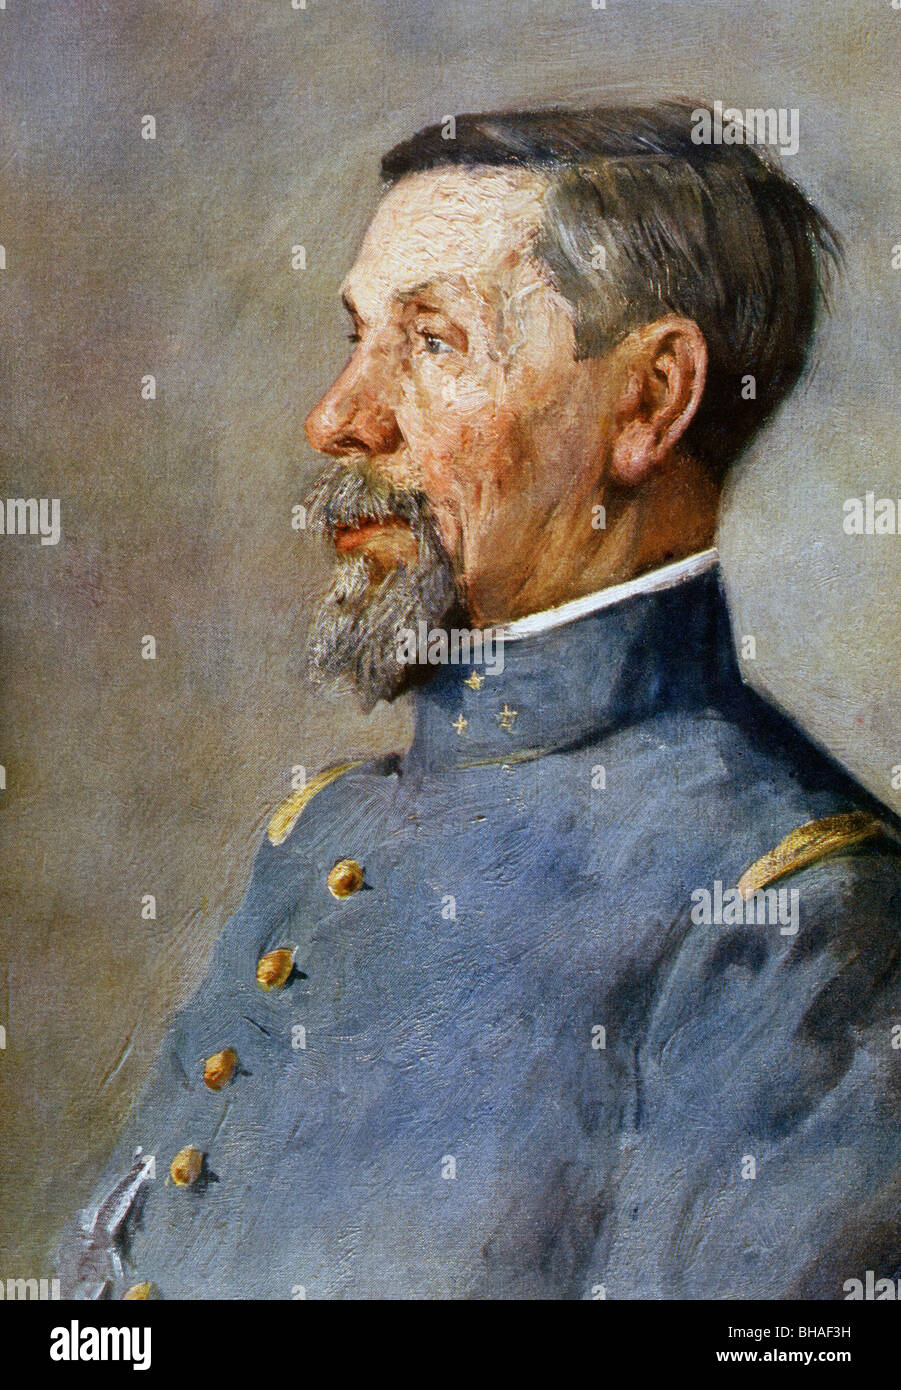 Pierre Auguste Roques, 1856 – 1920. French general and creator of French air force. - Stock Image